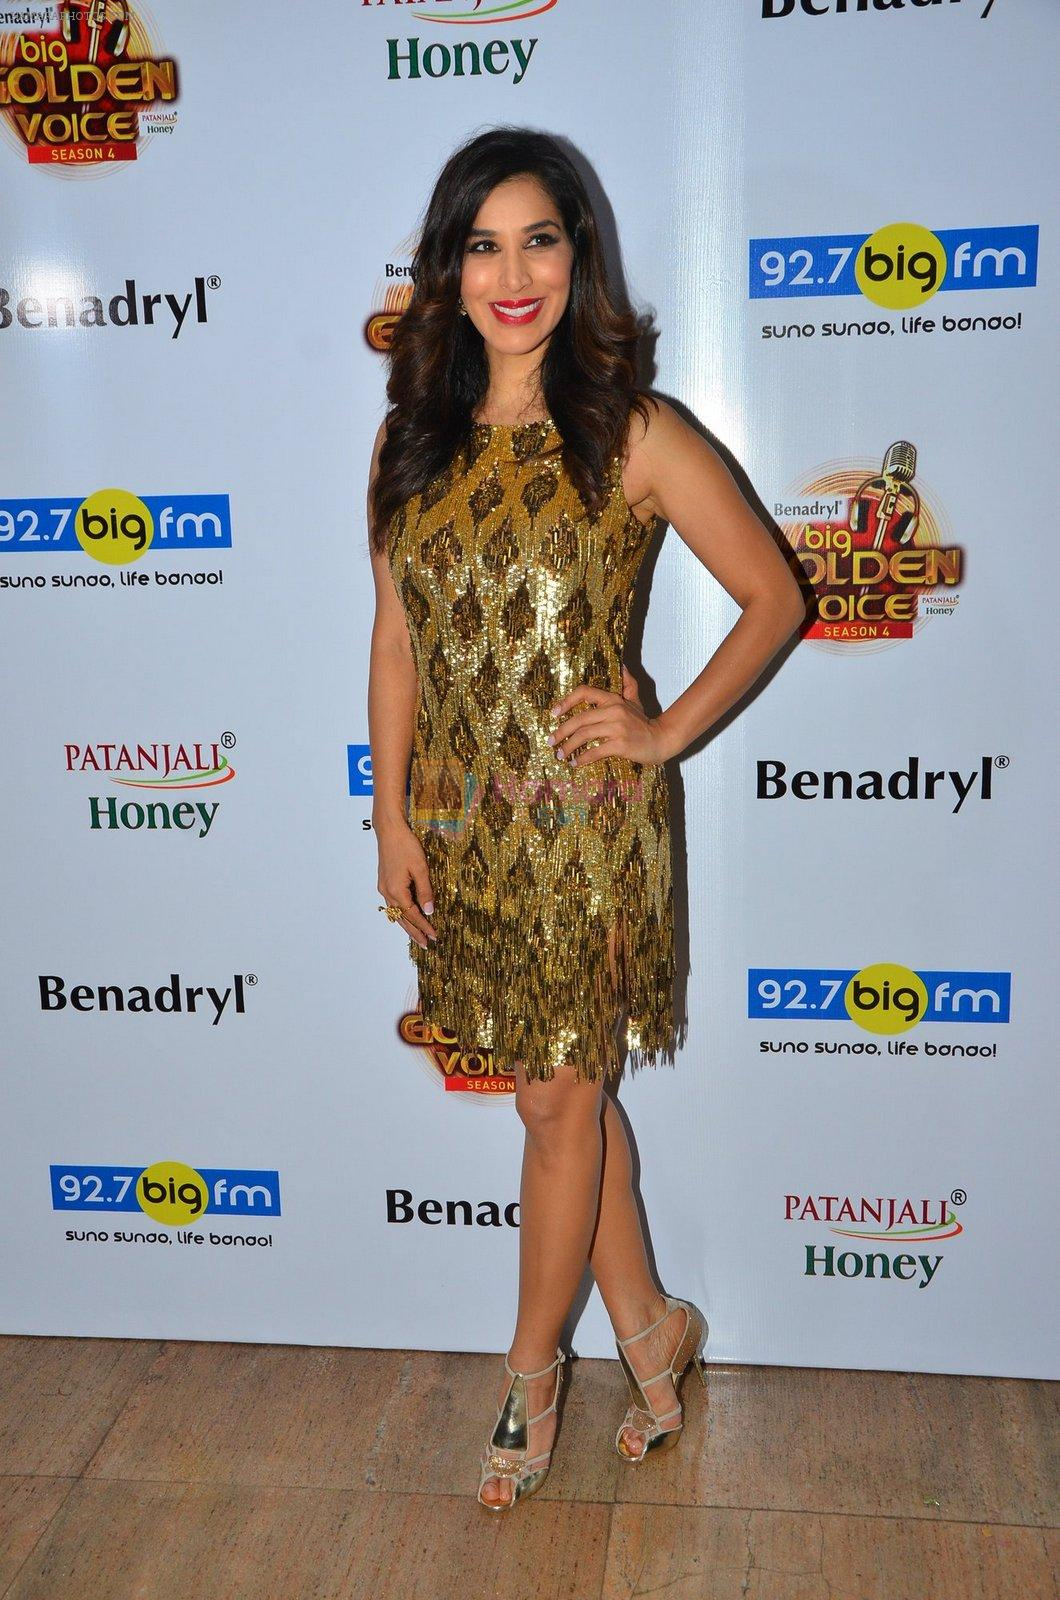 Sophie Choudry at Big FM Golden Voice event on 30th Aug 2016